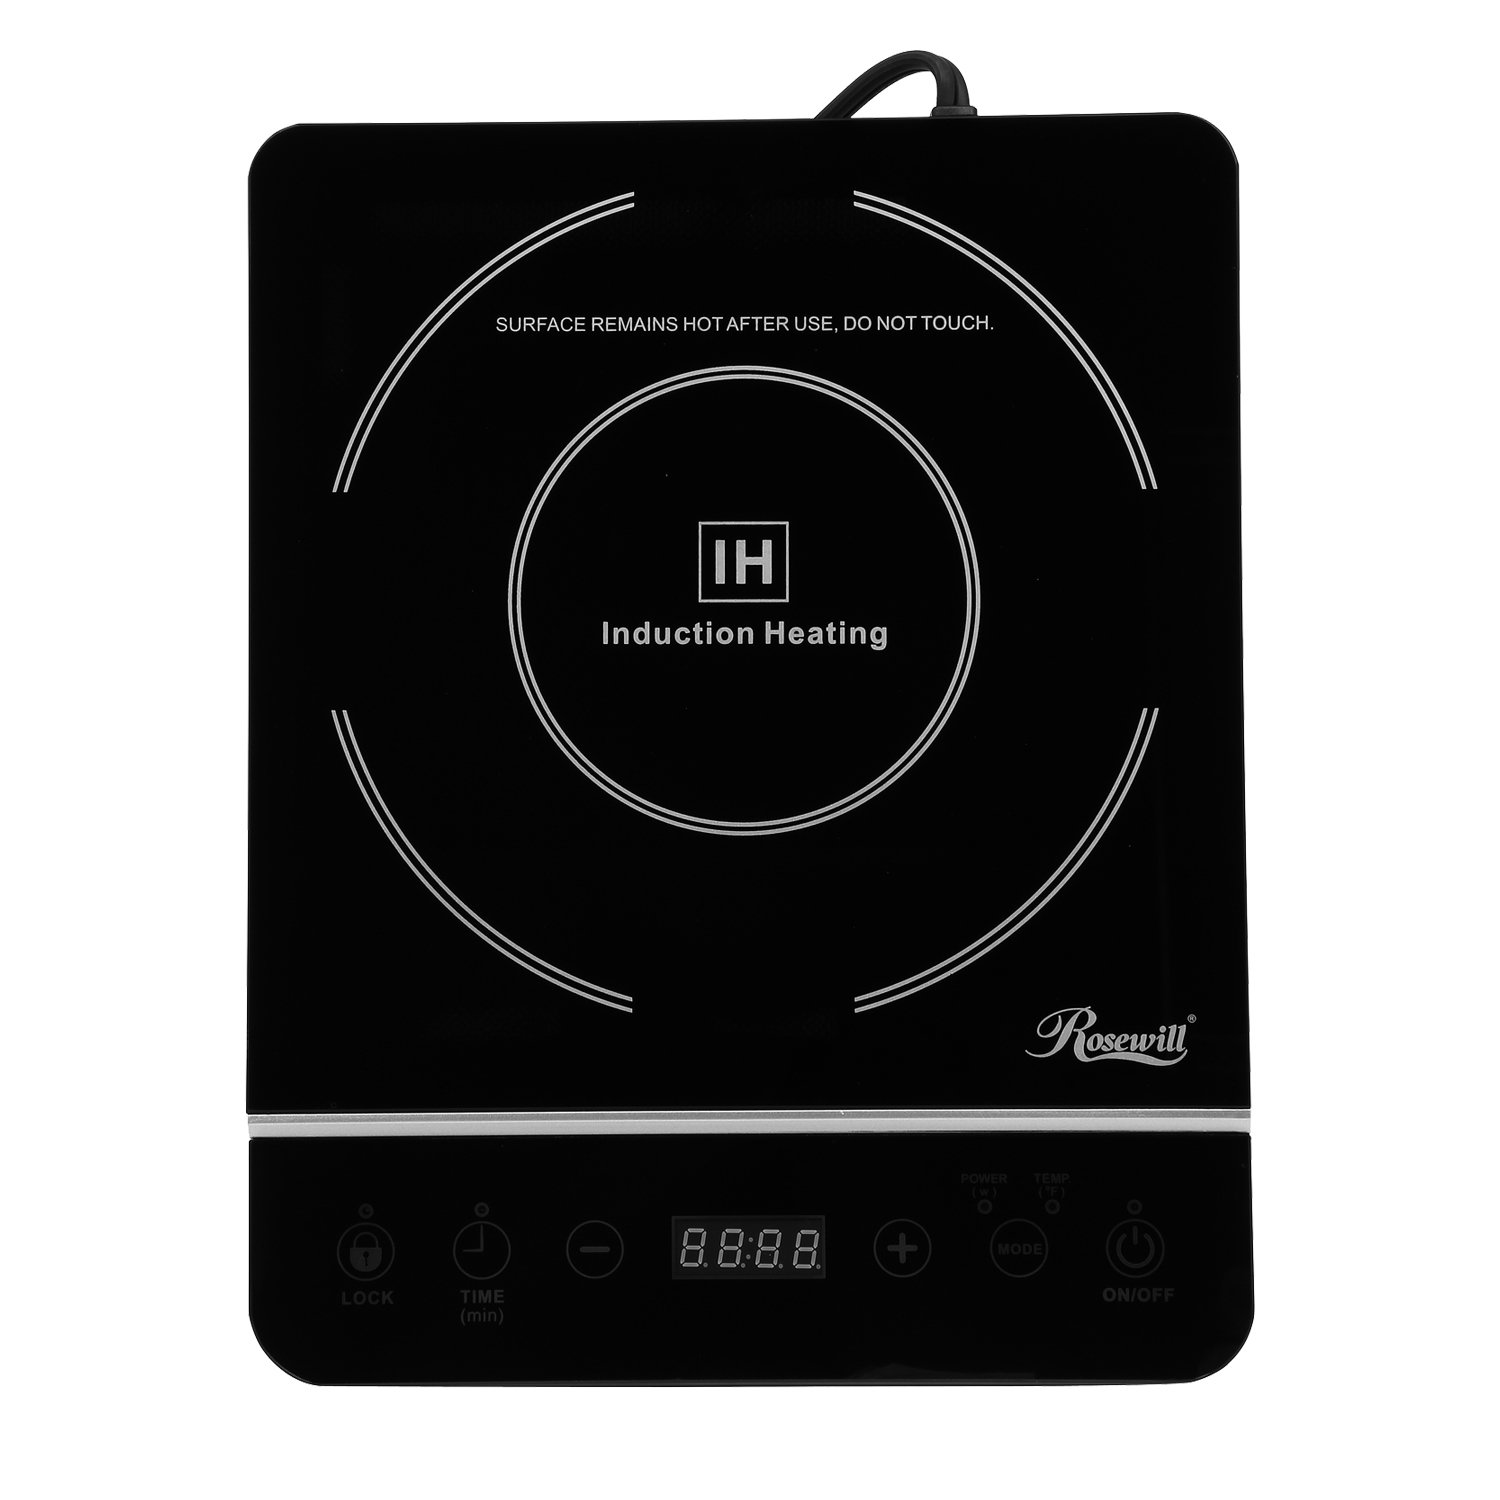 Rosewill 1800-Watt Induction Cooker with Stainless steel pot RHAI-13001